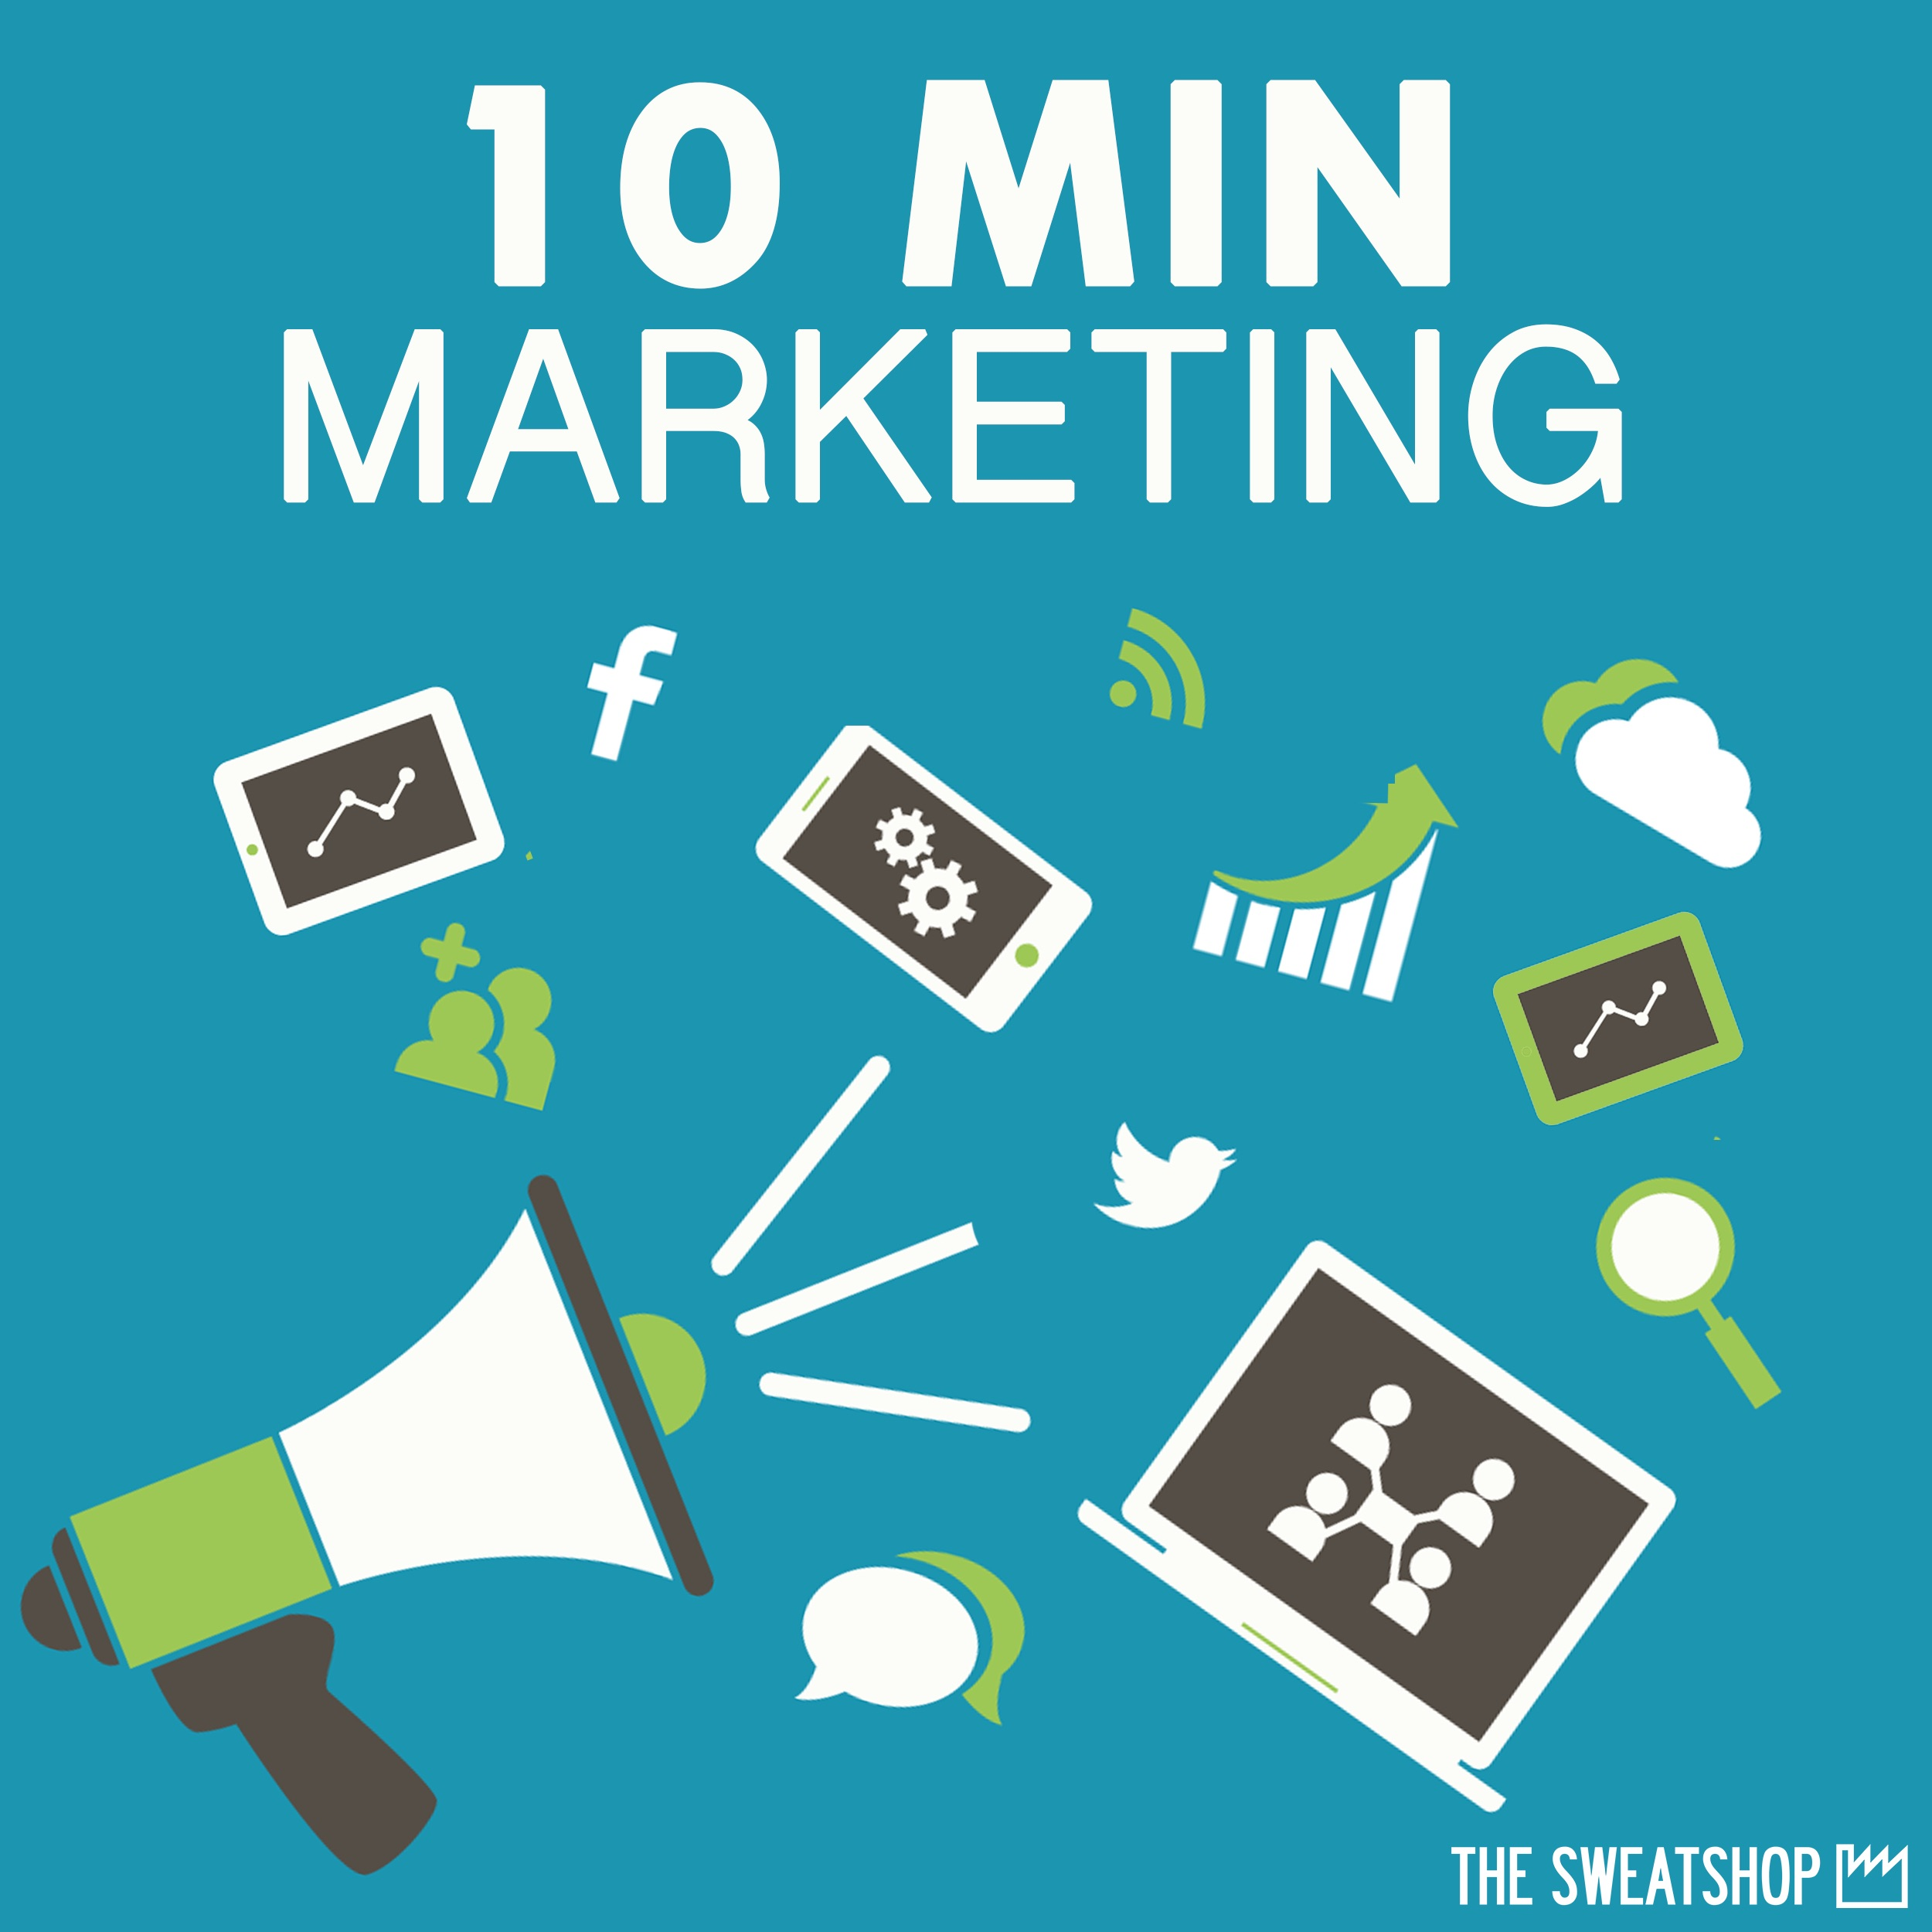 10 Min Marketing